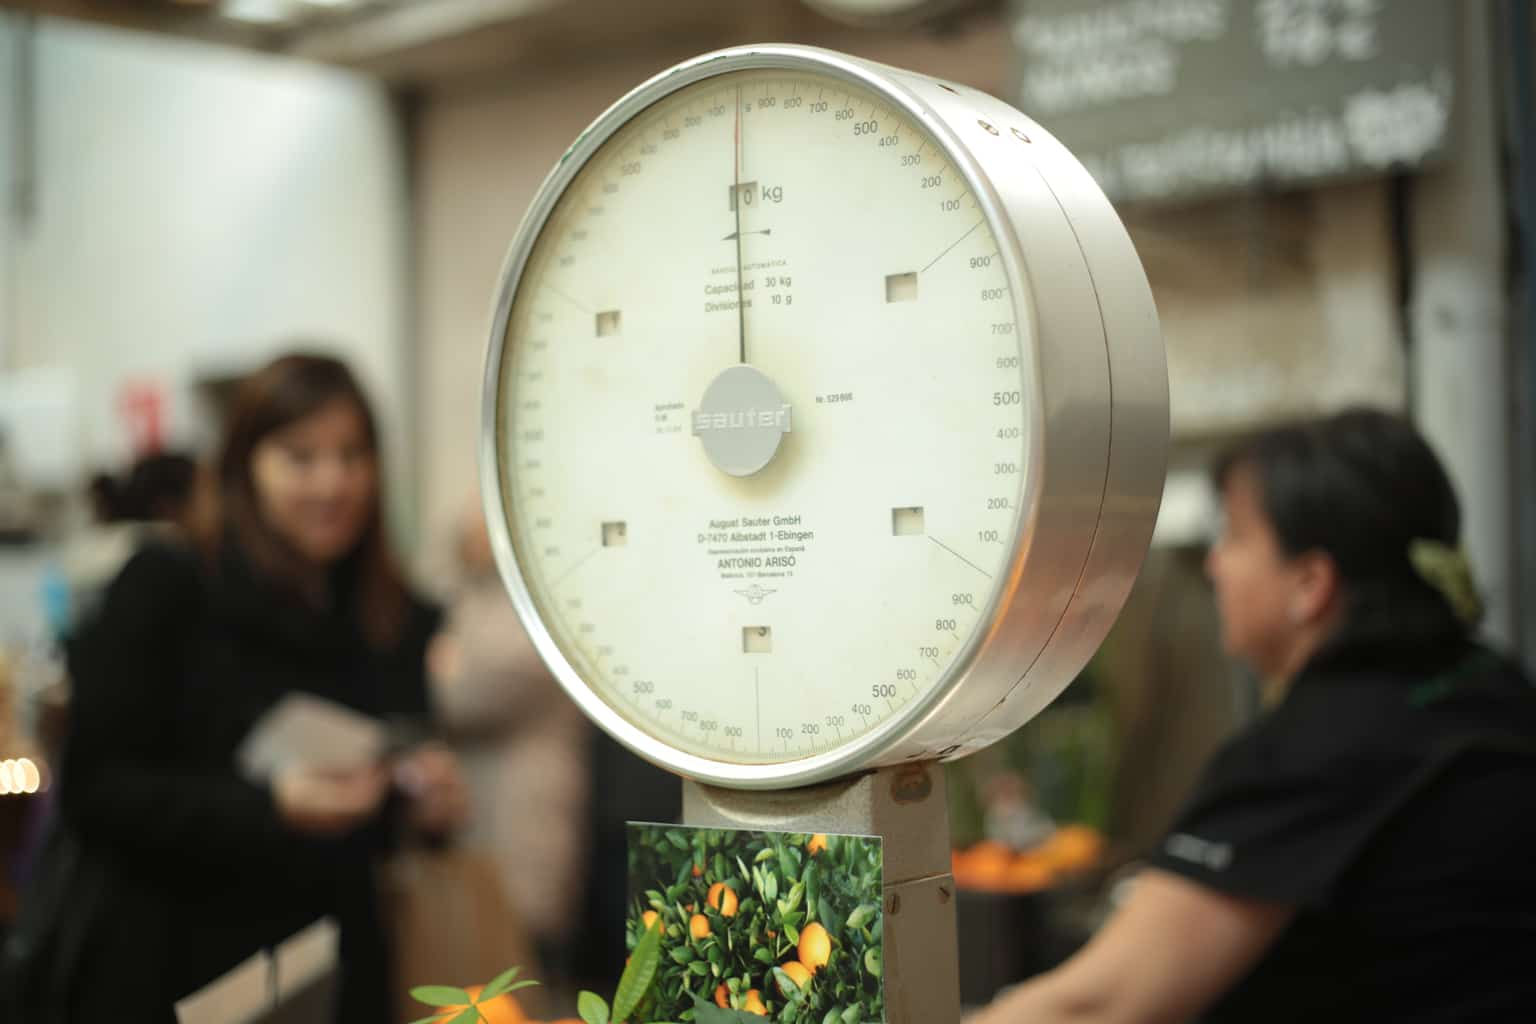 Ditch the scale for body fat testing